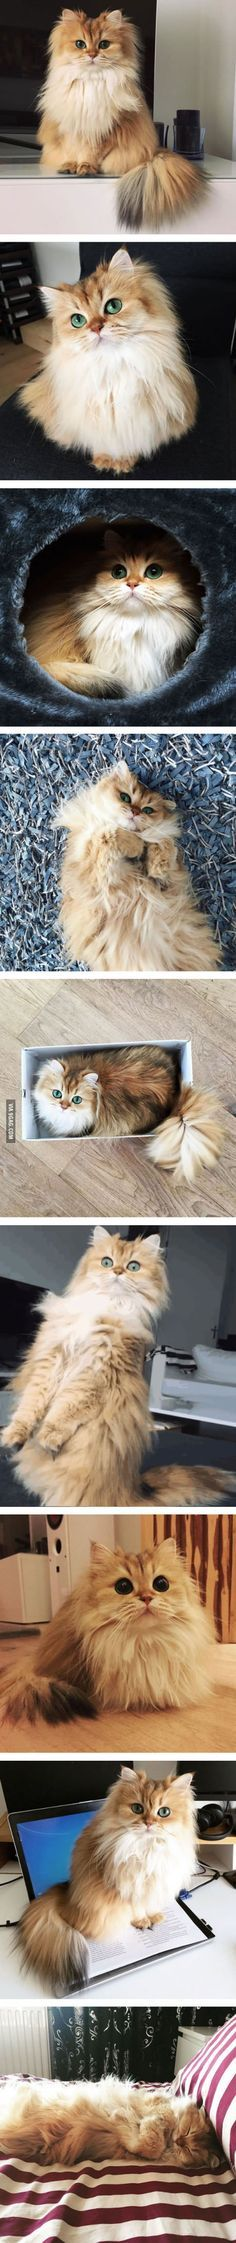 This Is Smoothie, The World's Most Photogenic Cat <~~and better looking…: